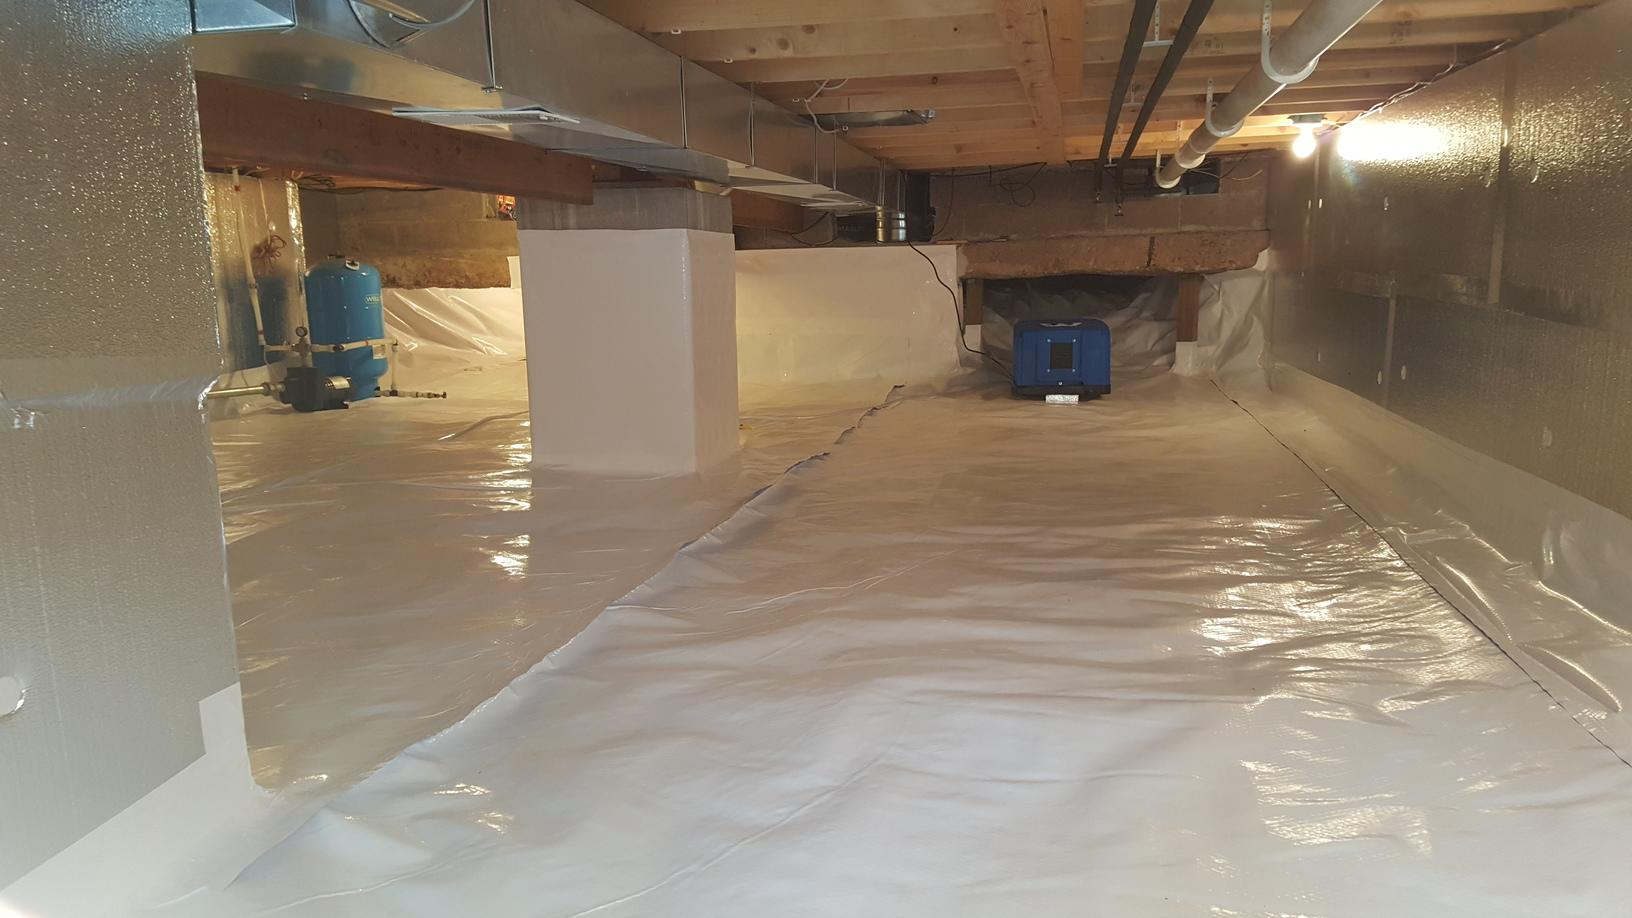 Crawl Space Insulated and Sealed in Lac Du Flambeau, Wisconsin - After Photo